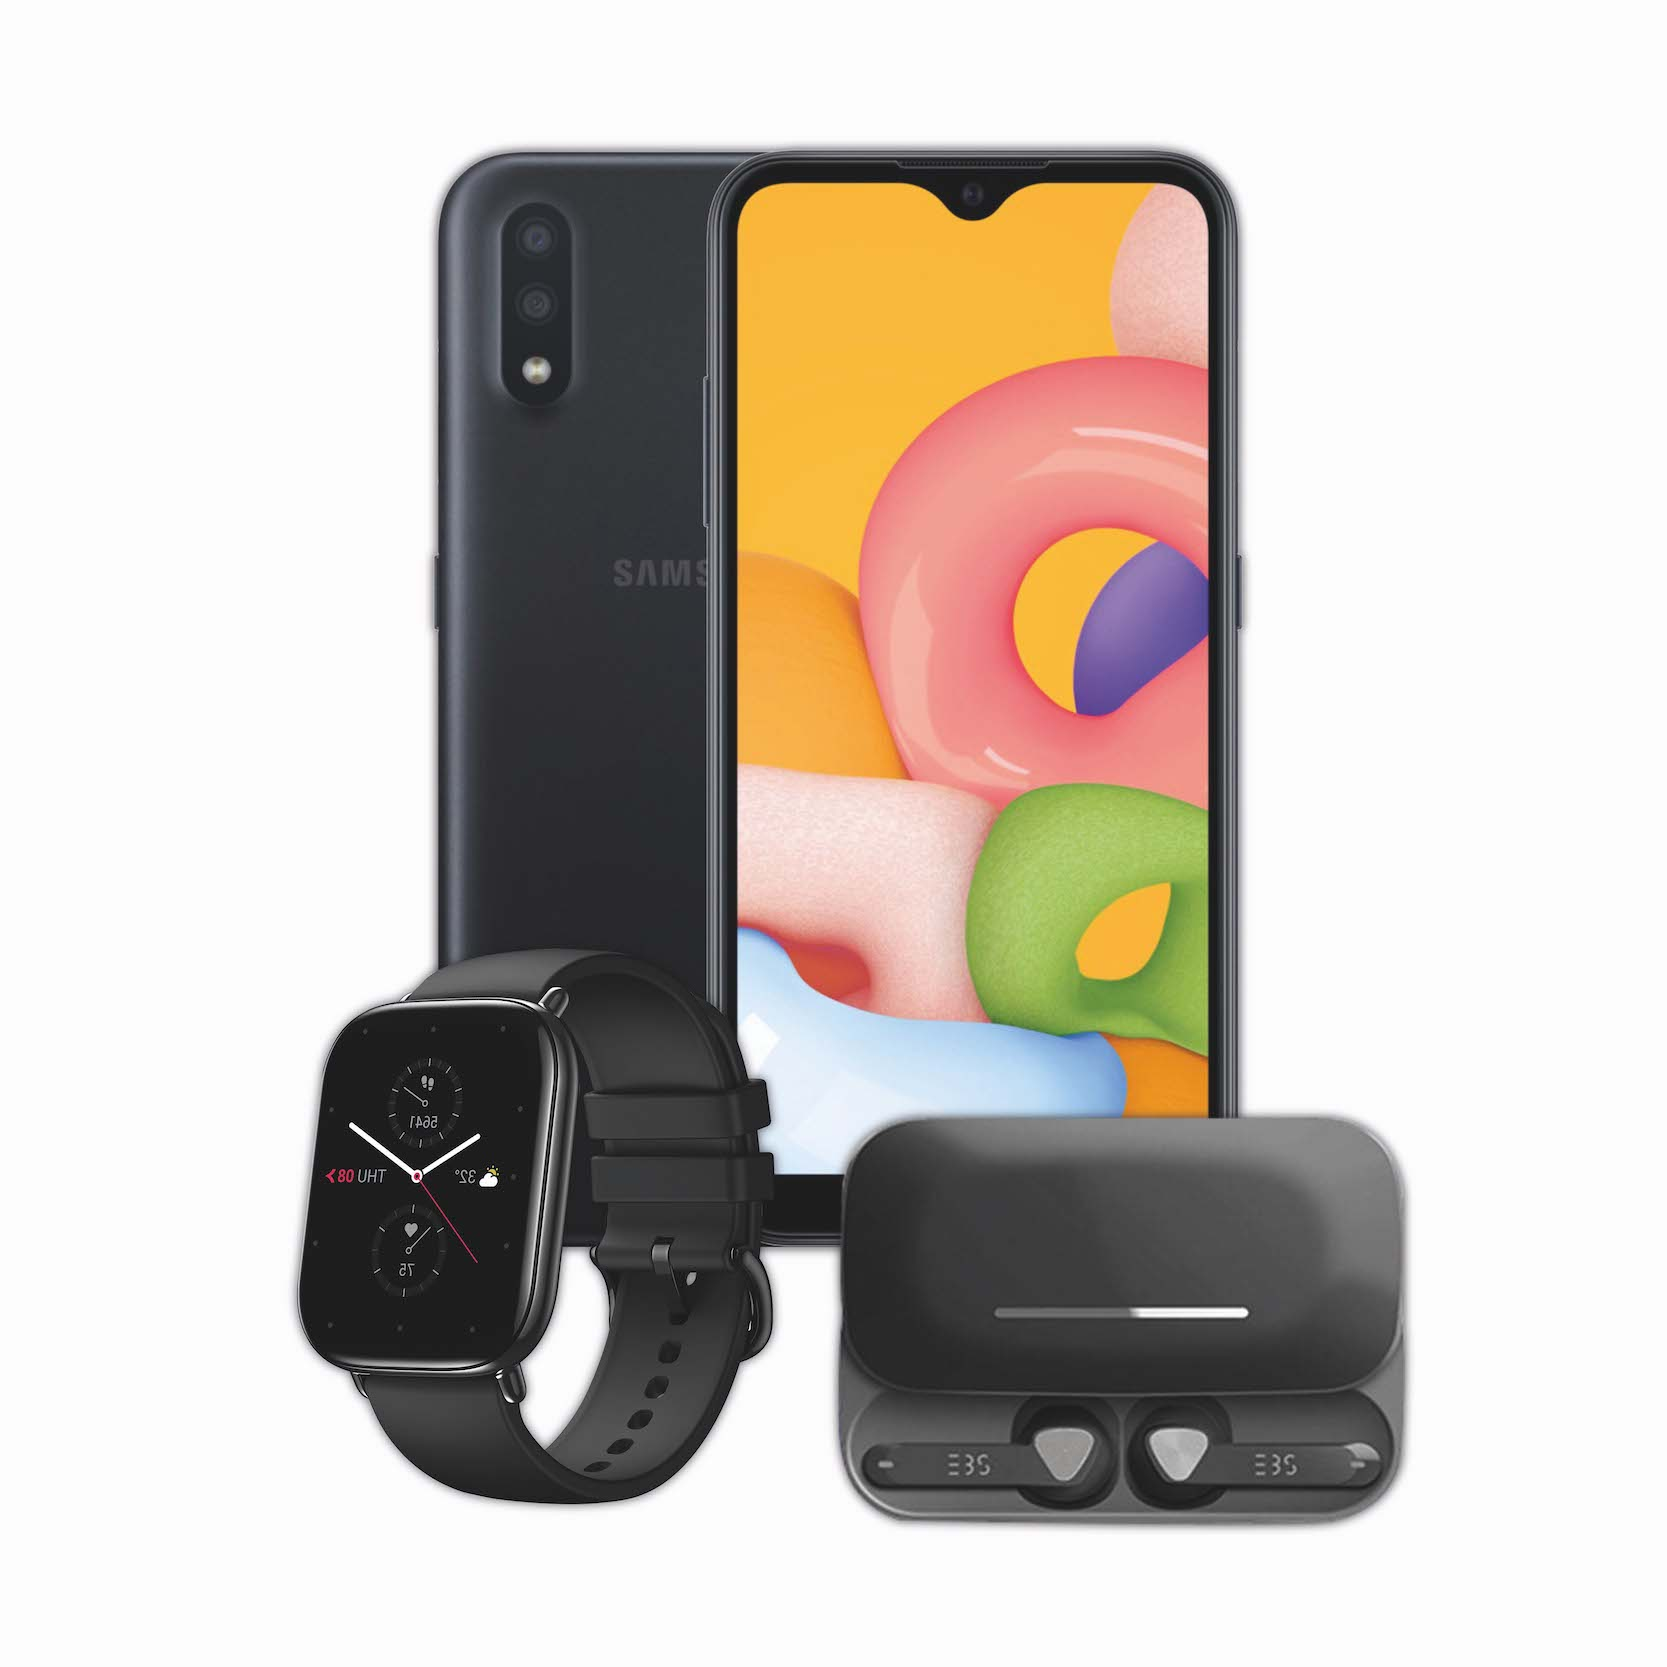 Samsung Galaxy A01 + EBS Earpods + Smart Watch